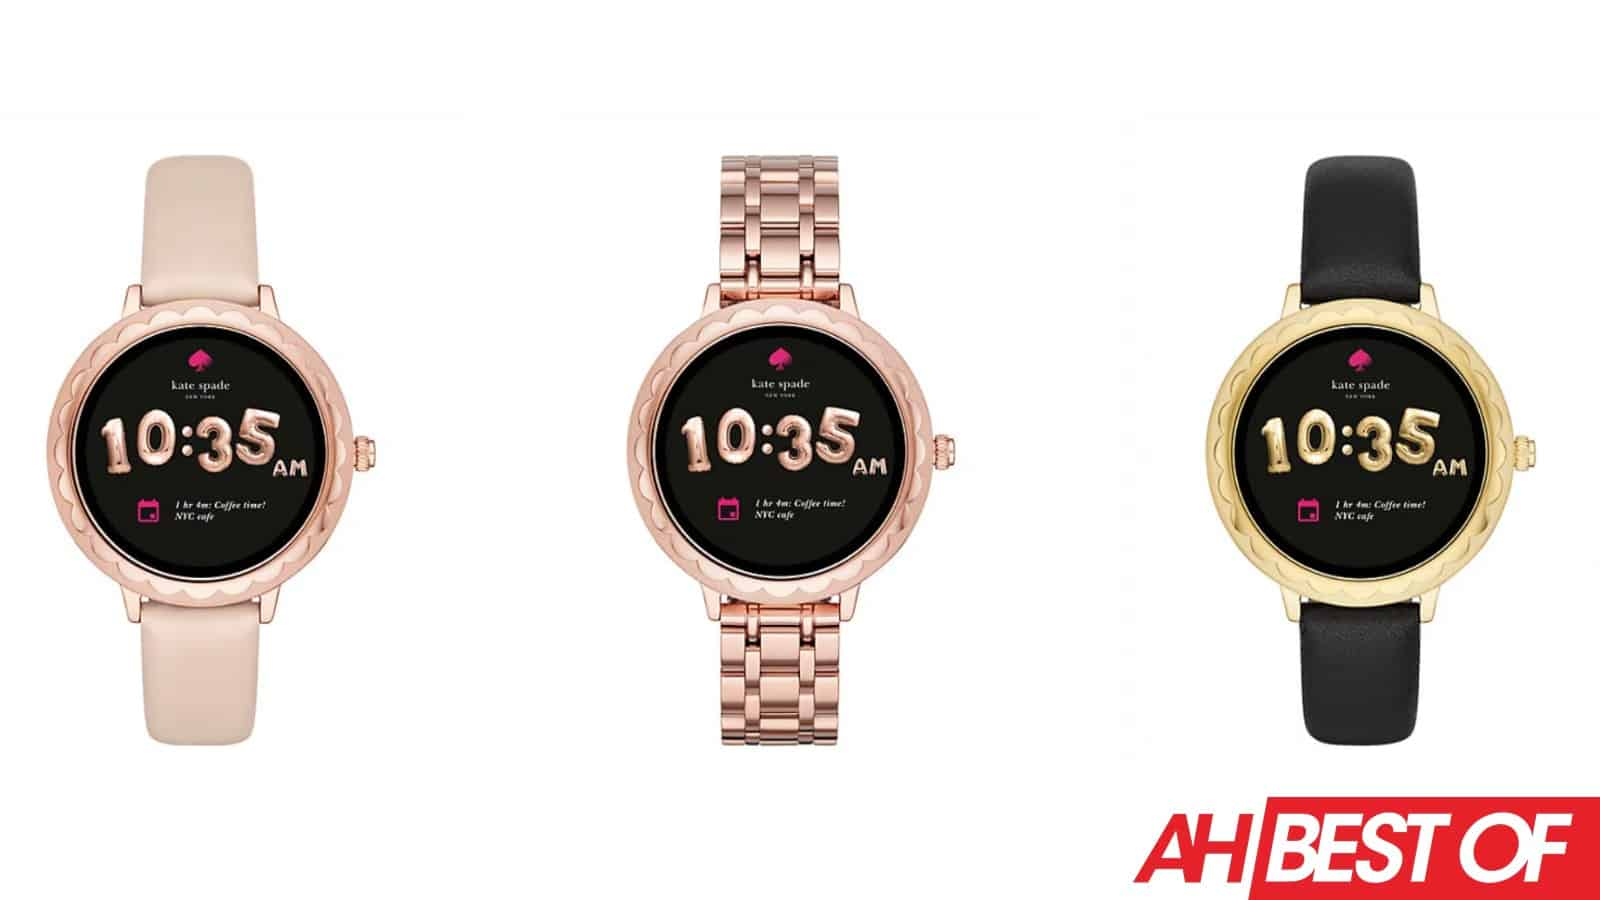 kate spade Scallop Smartwatch 2 Best of CES 2019